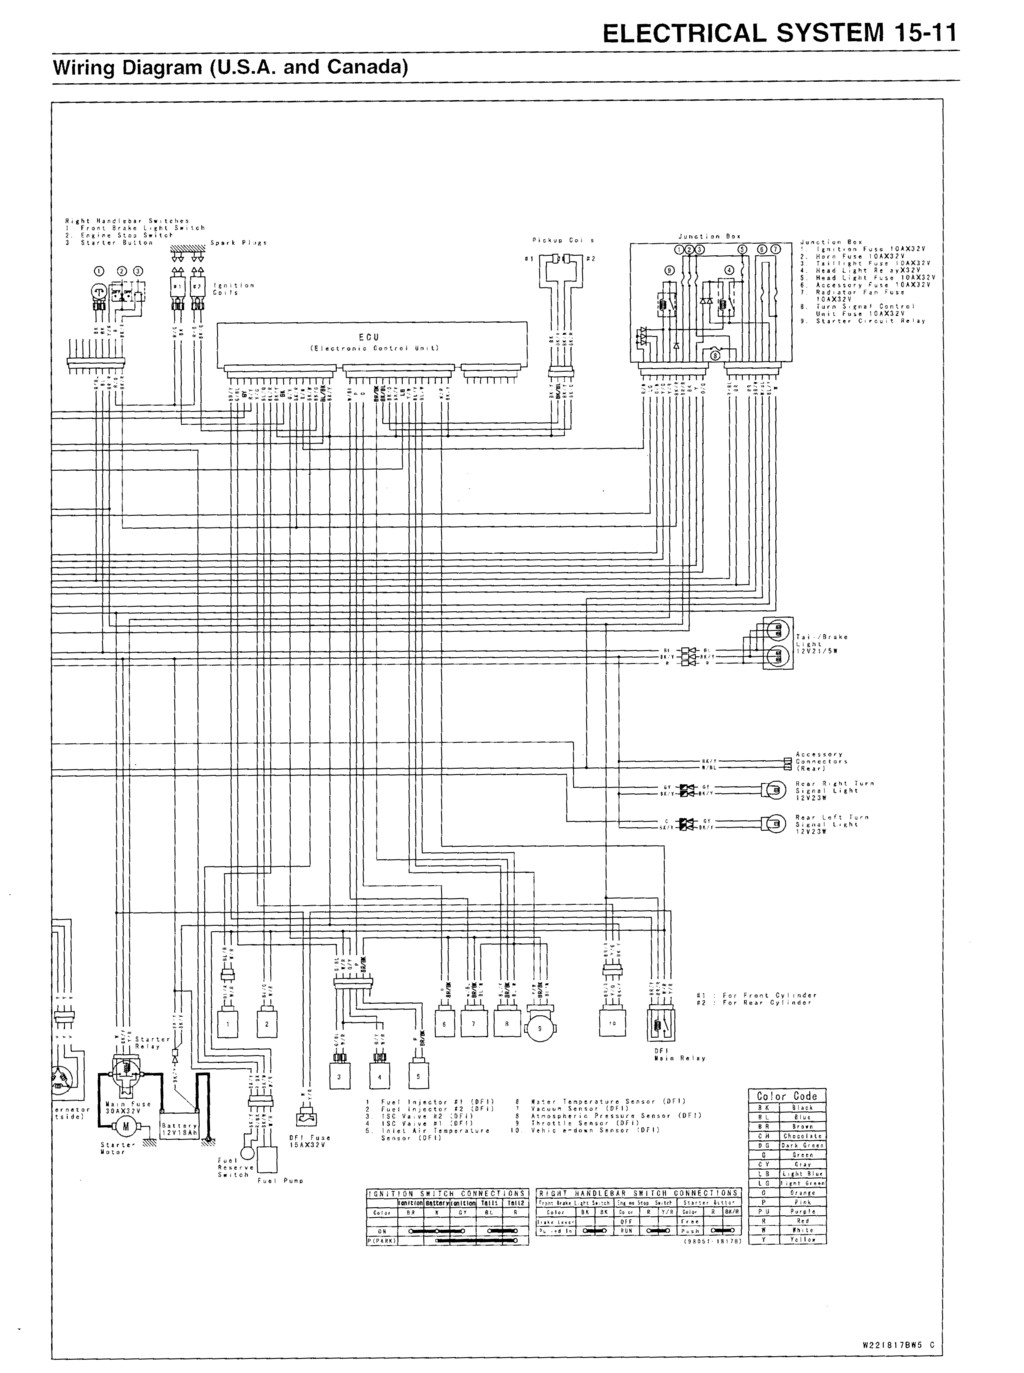 nomad_wiring_diagram_carbed_p2 vulcan wiring diagrams gadget's fixit page 2003 Vulcan Mean Streak at bayanpartner.co